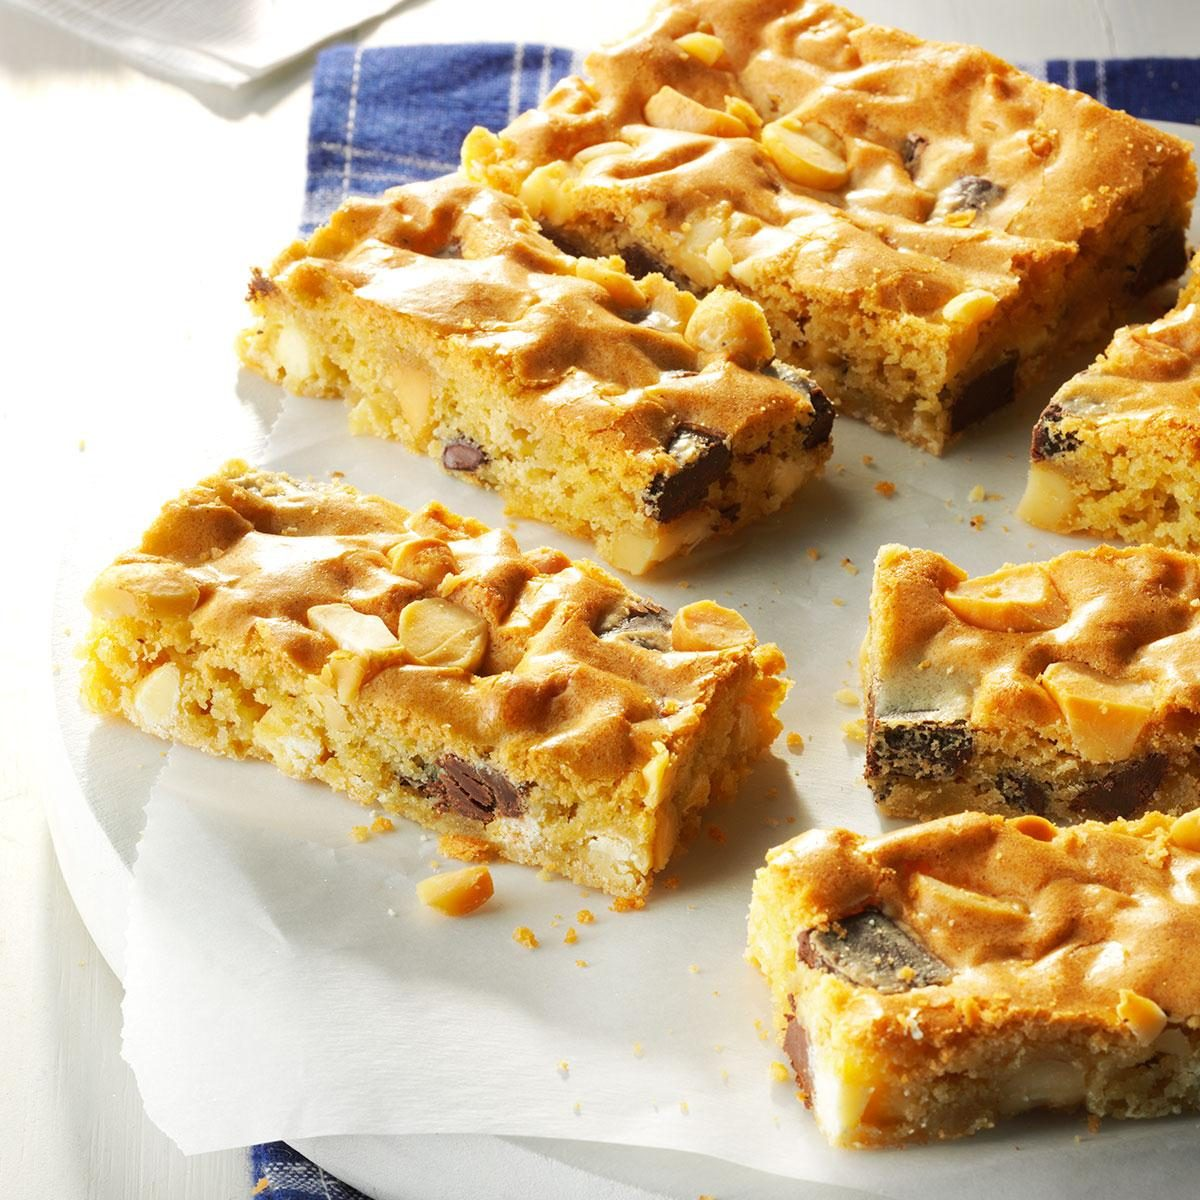 Chunky Blond Brownies